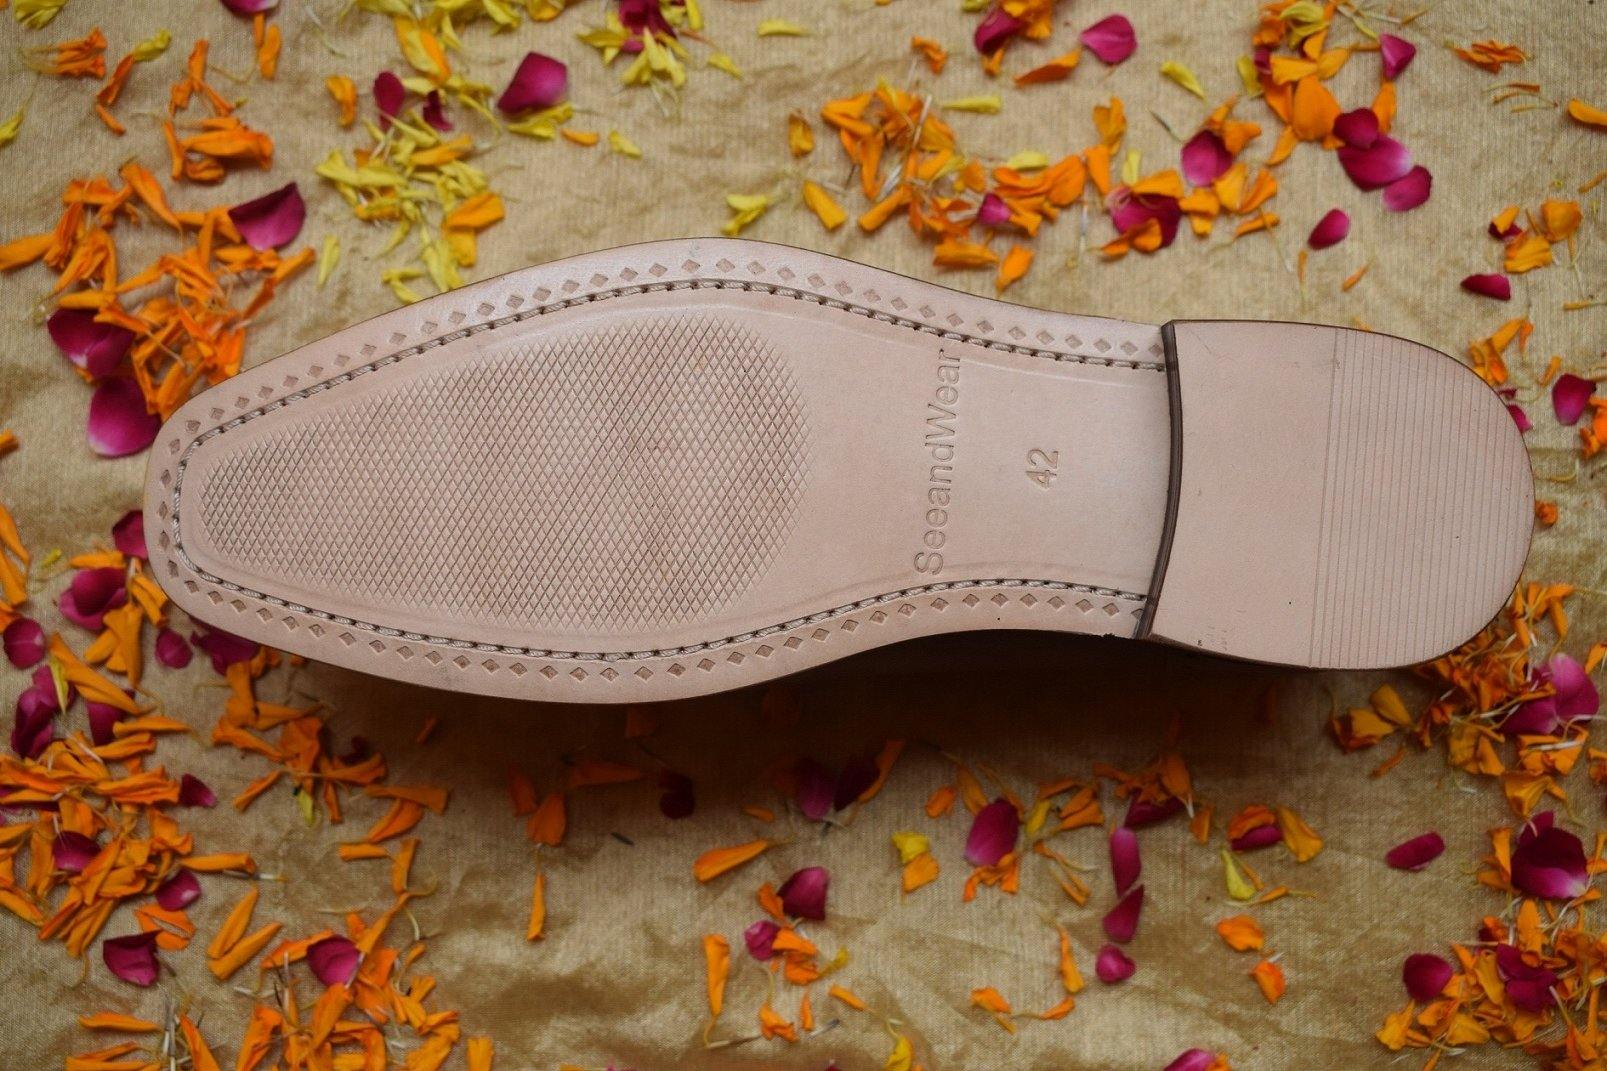 SeeandWear Luxury Decorated Stitched Handmade Shoes for Men - SeeandWear